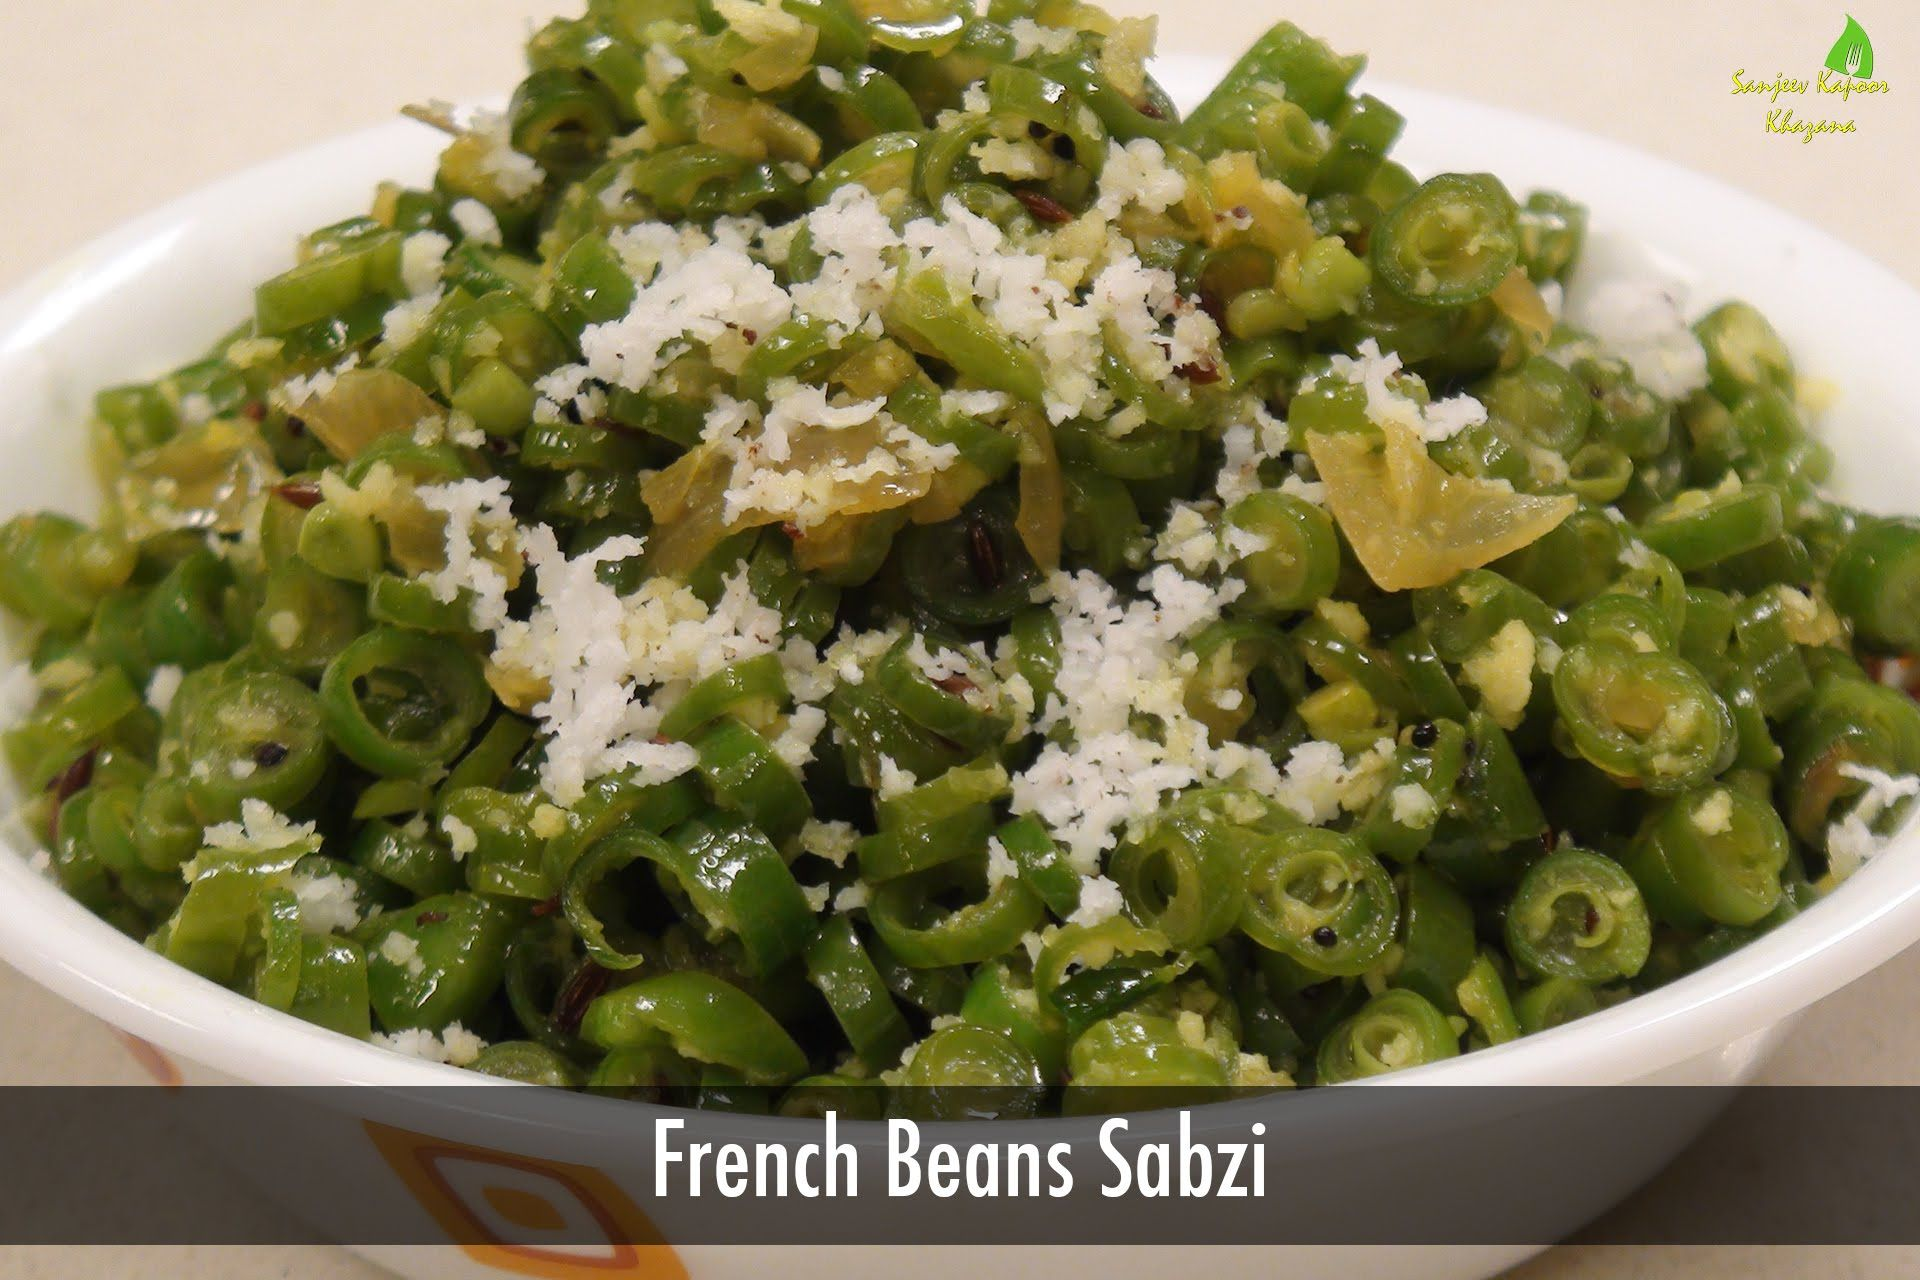 French bean sabzi simple indian cooking sanjeev kapoor khazana food french bean sabzi simple indian cooking sanjeev kapoor khazana forumfinder Images